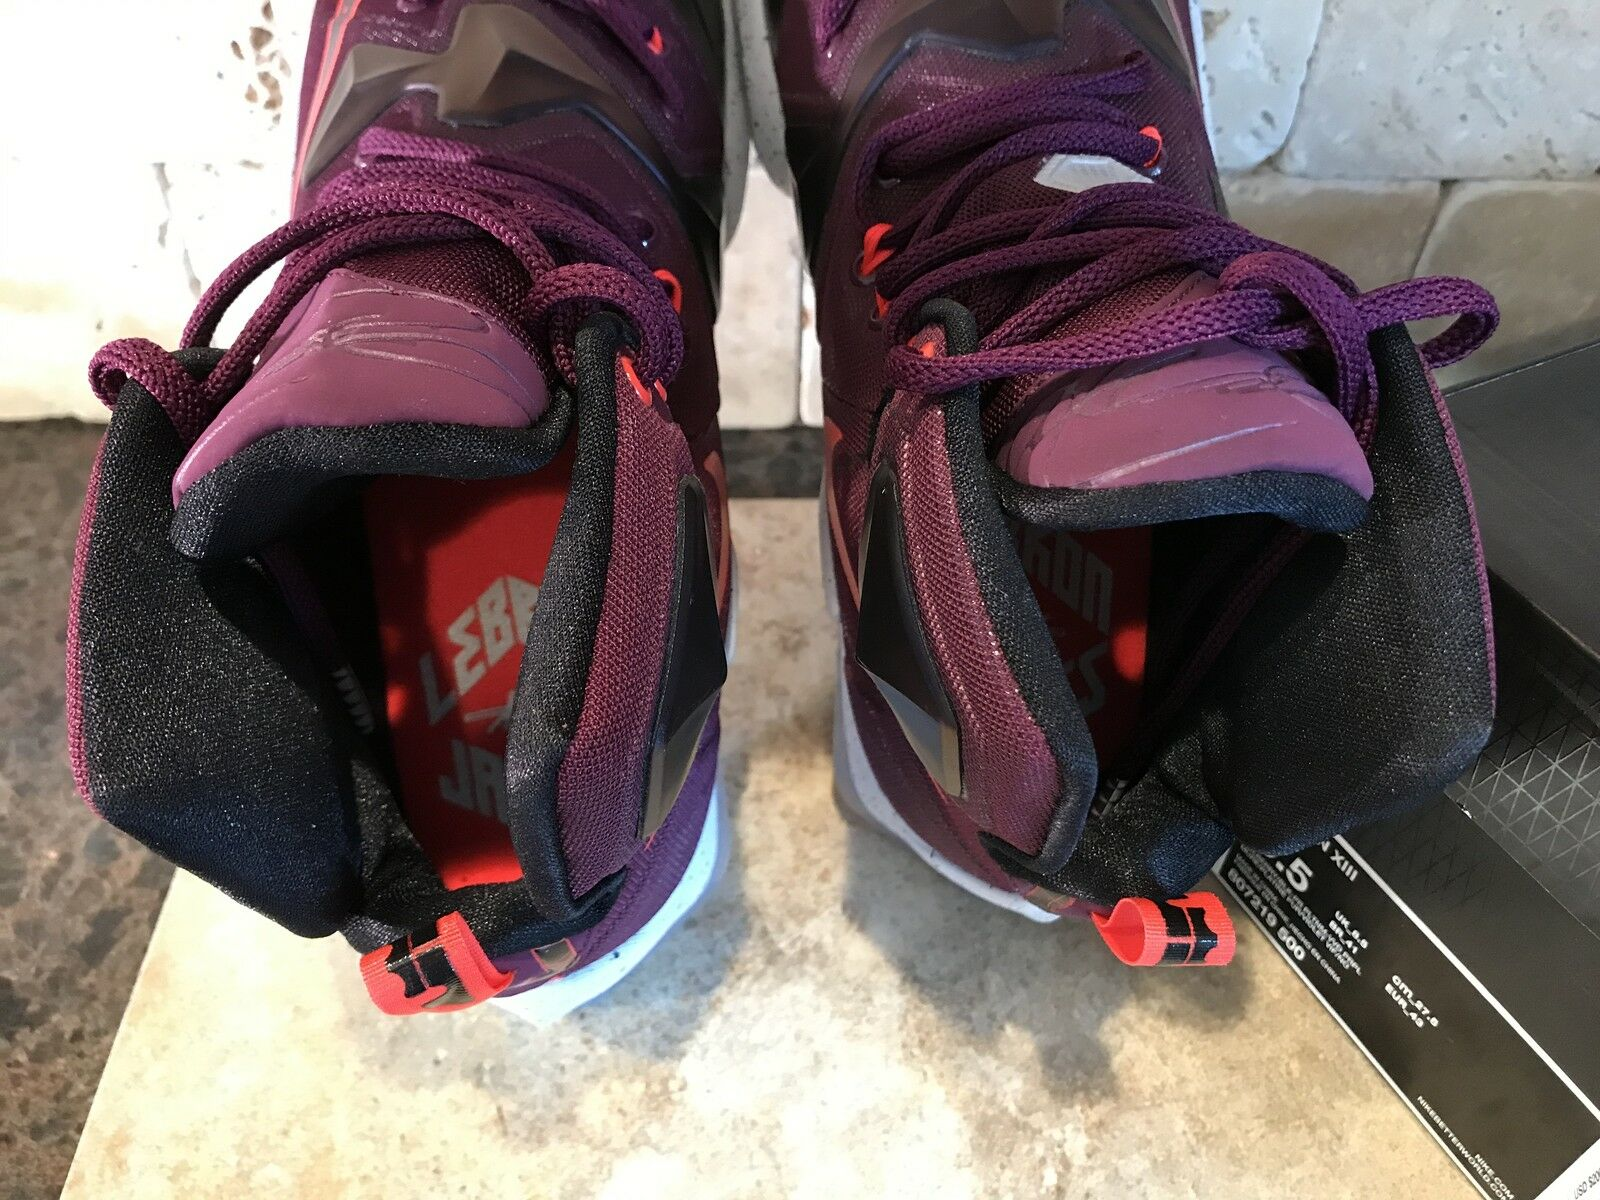 6e784c323c86f ... LEBRON XIII SIZE SIZE SIZE 9.5 MEN S SNEAKERS AUTHENTIC 2015 MULBERRY  WRITTEN IN THE STARS 7dbf7f ...